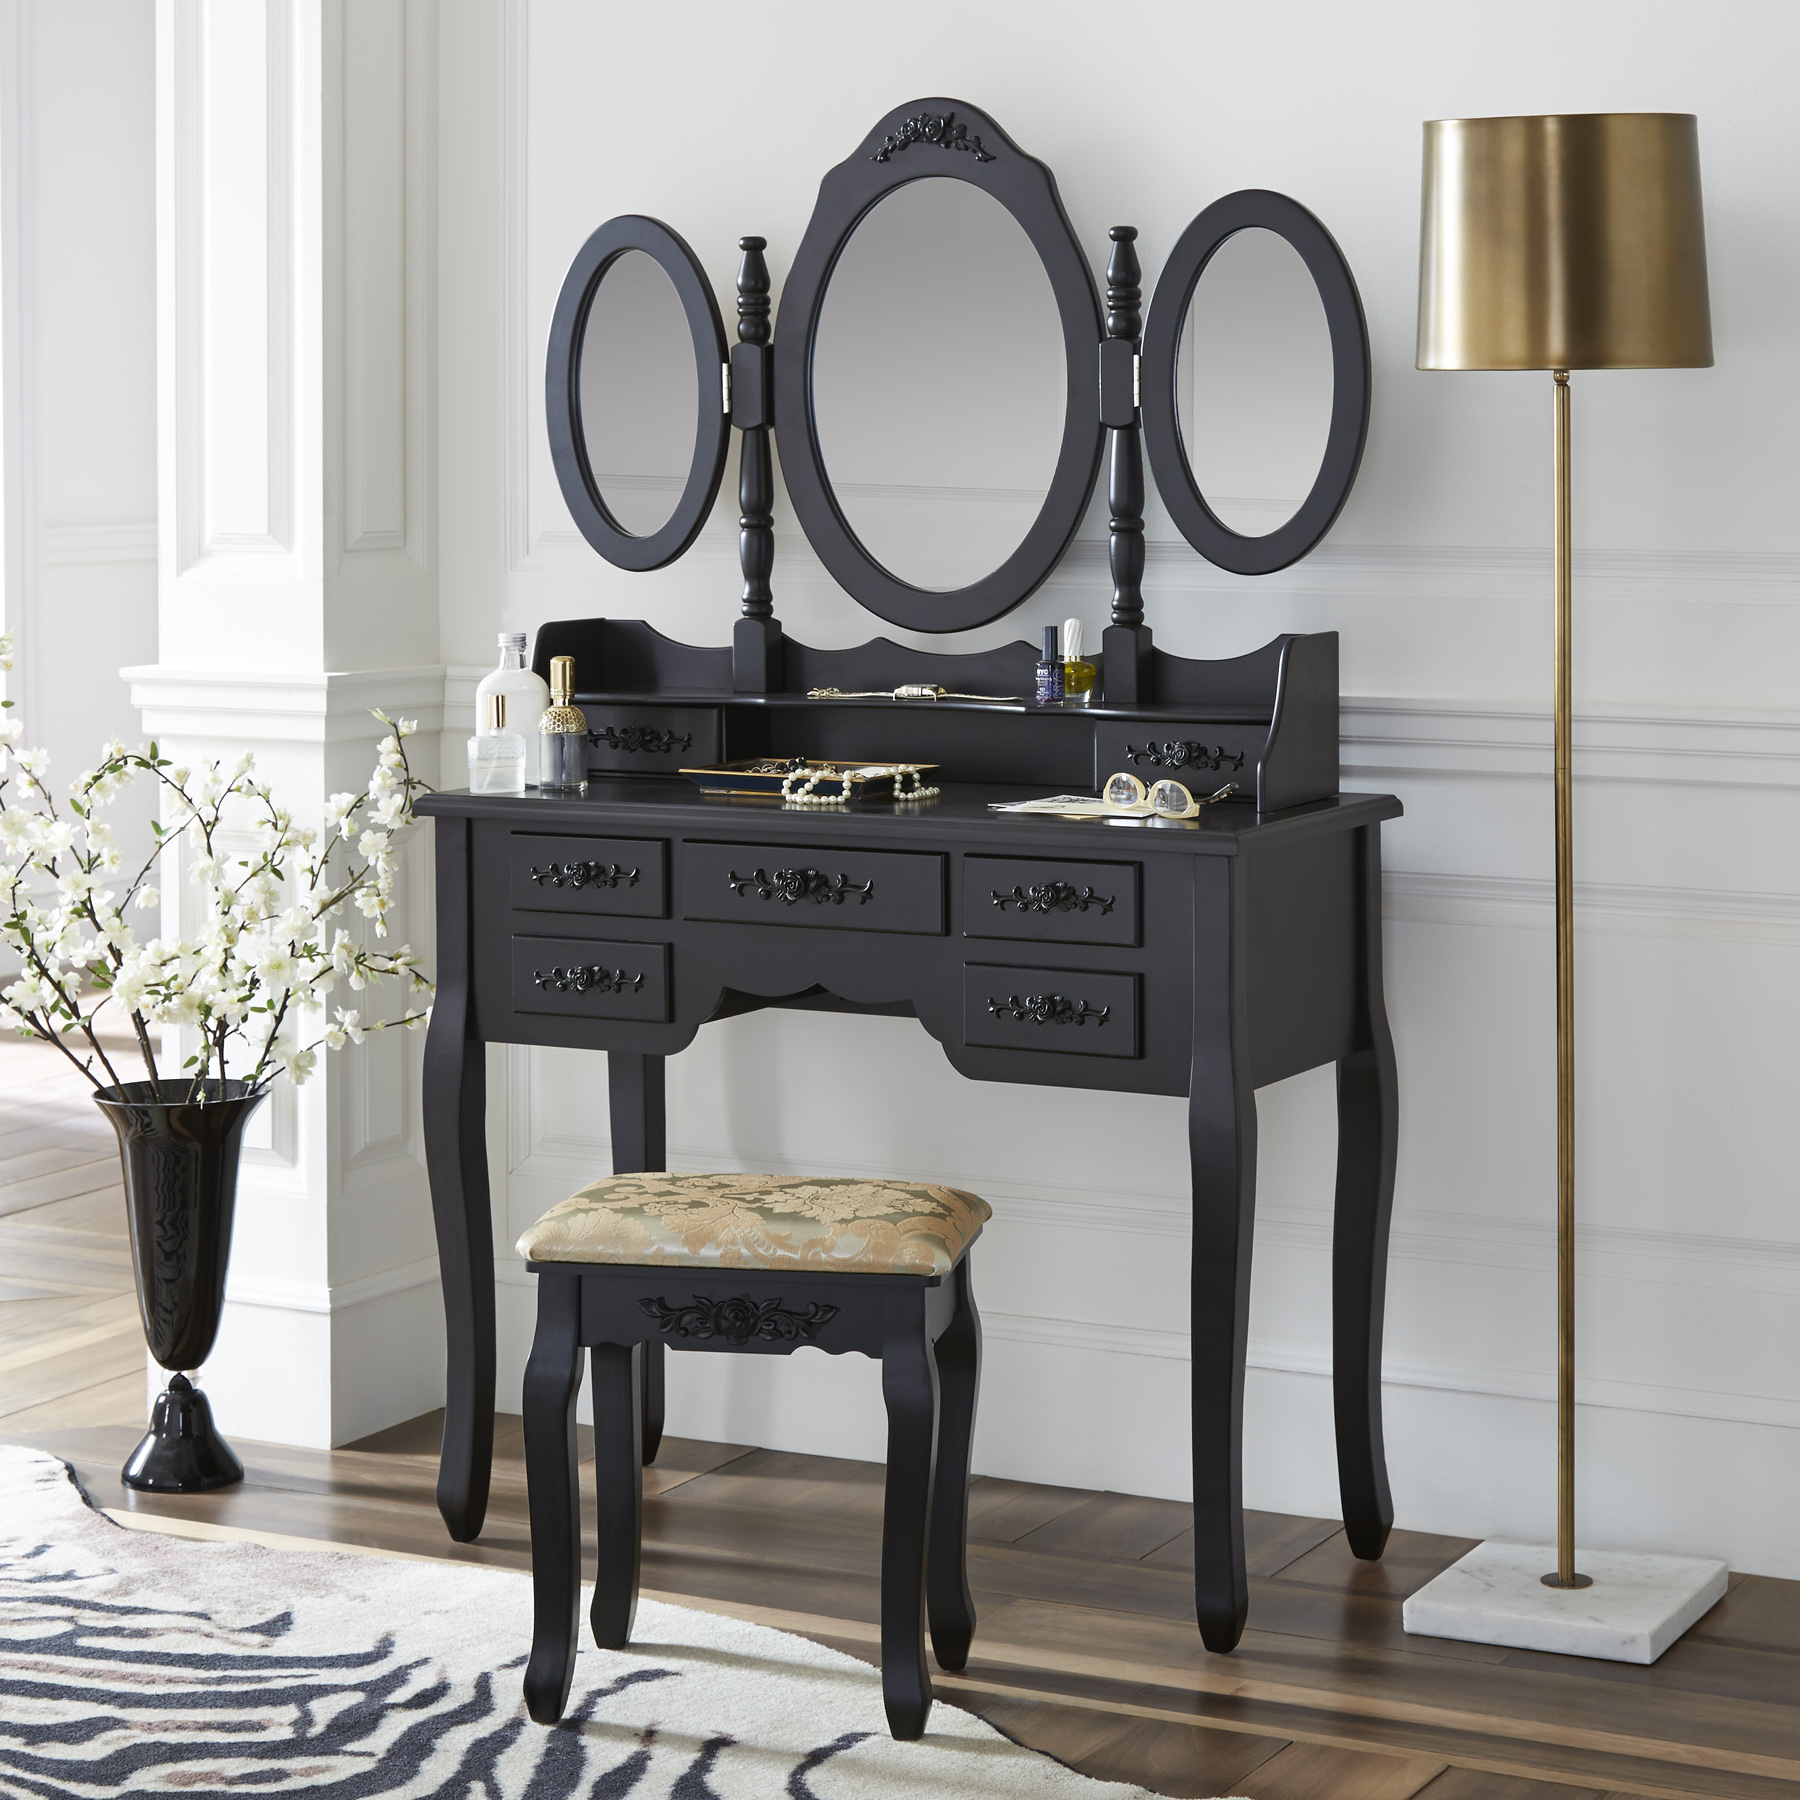 Fineboard Vanity Set with Stool Makeup Table with Seven Organization Drawers 3 Oval Mirrors, Black